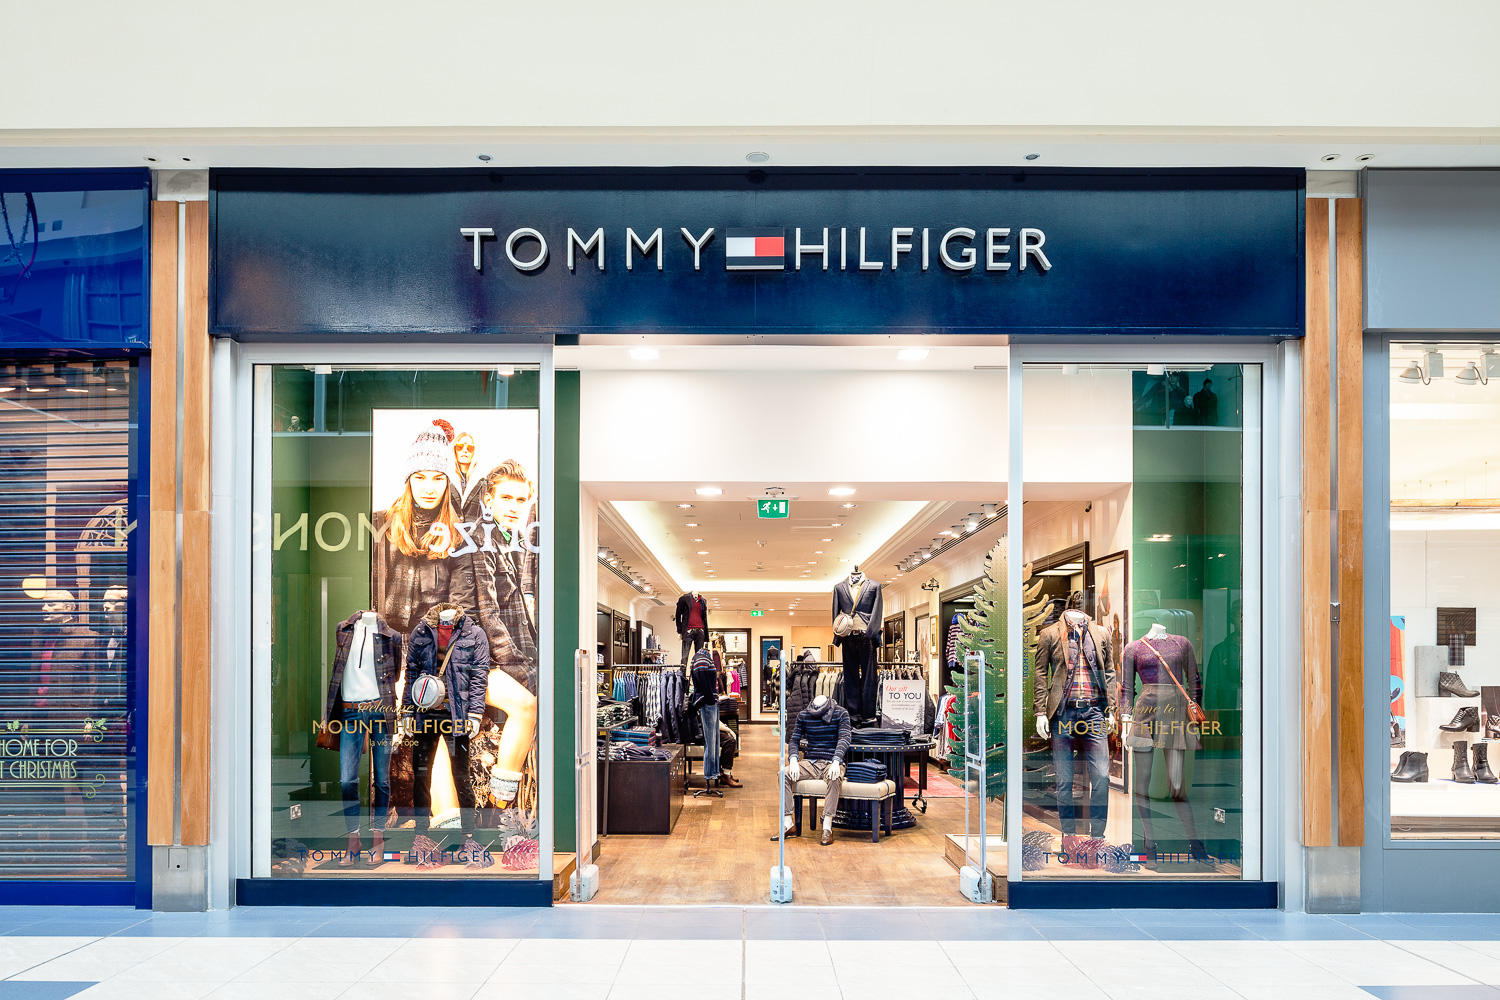 pinna Rango pulsante  Tommy Hilfiger - CLOTHING ACCESSORIES (RETAIL), CLOTHING AND ACCESSORIES,  SHOES (RETAIL), MEN'S CLOTHING (RETAIL), WOMEN'S CLOTHING (RETAIL), Cork - Tommy  Hilfiger in Cork - Mahon Point Shopping Centre Unit - TEL: 0214359... -  IE100194127 - Local ...